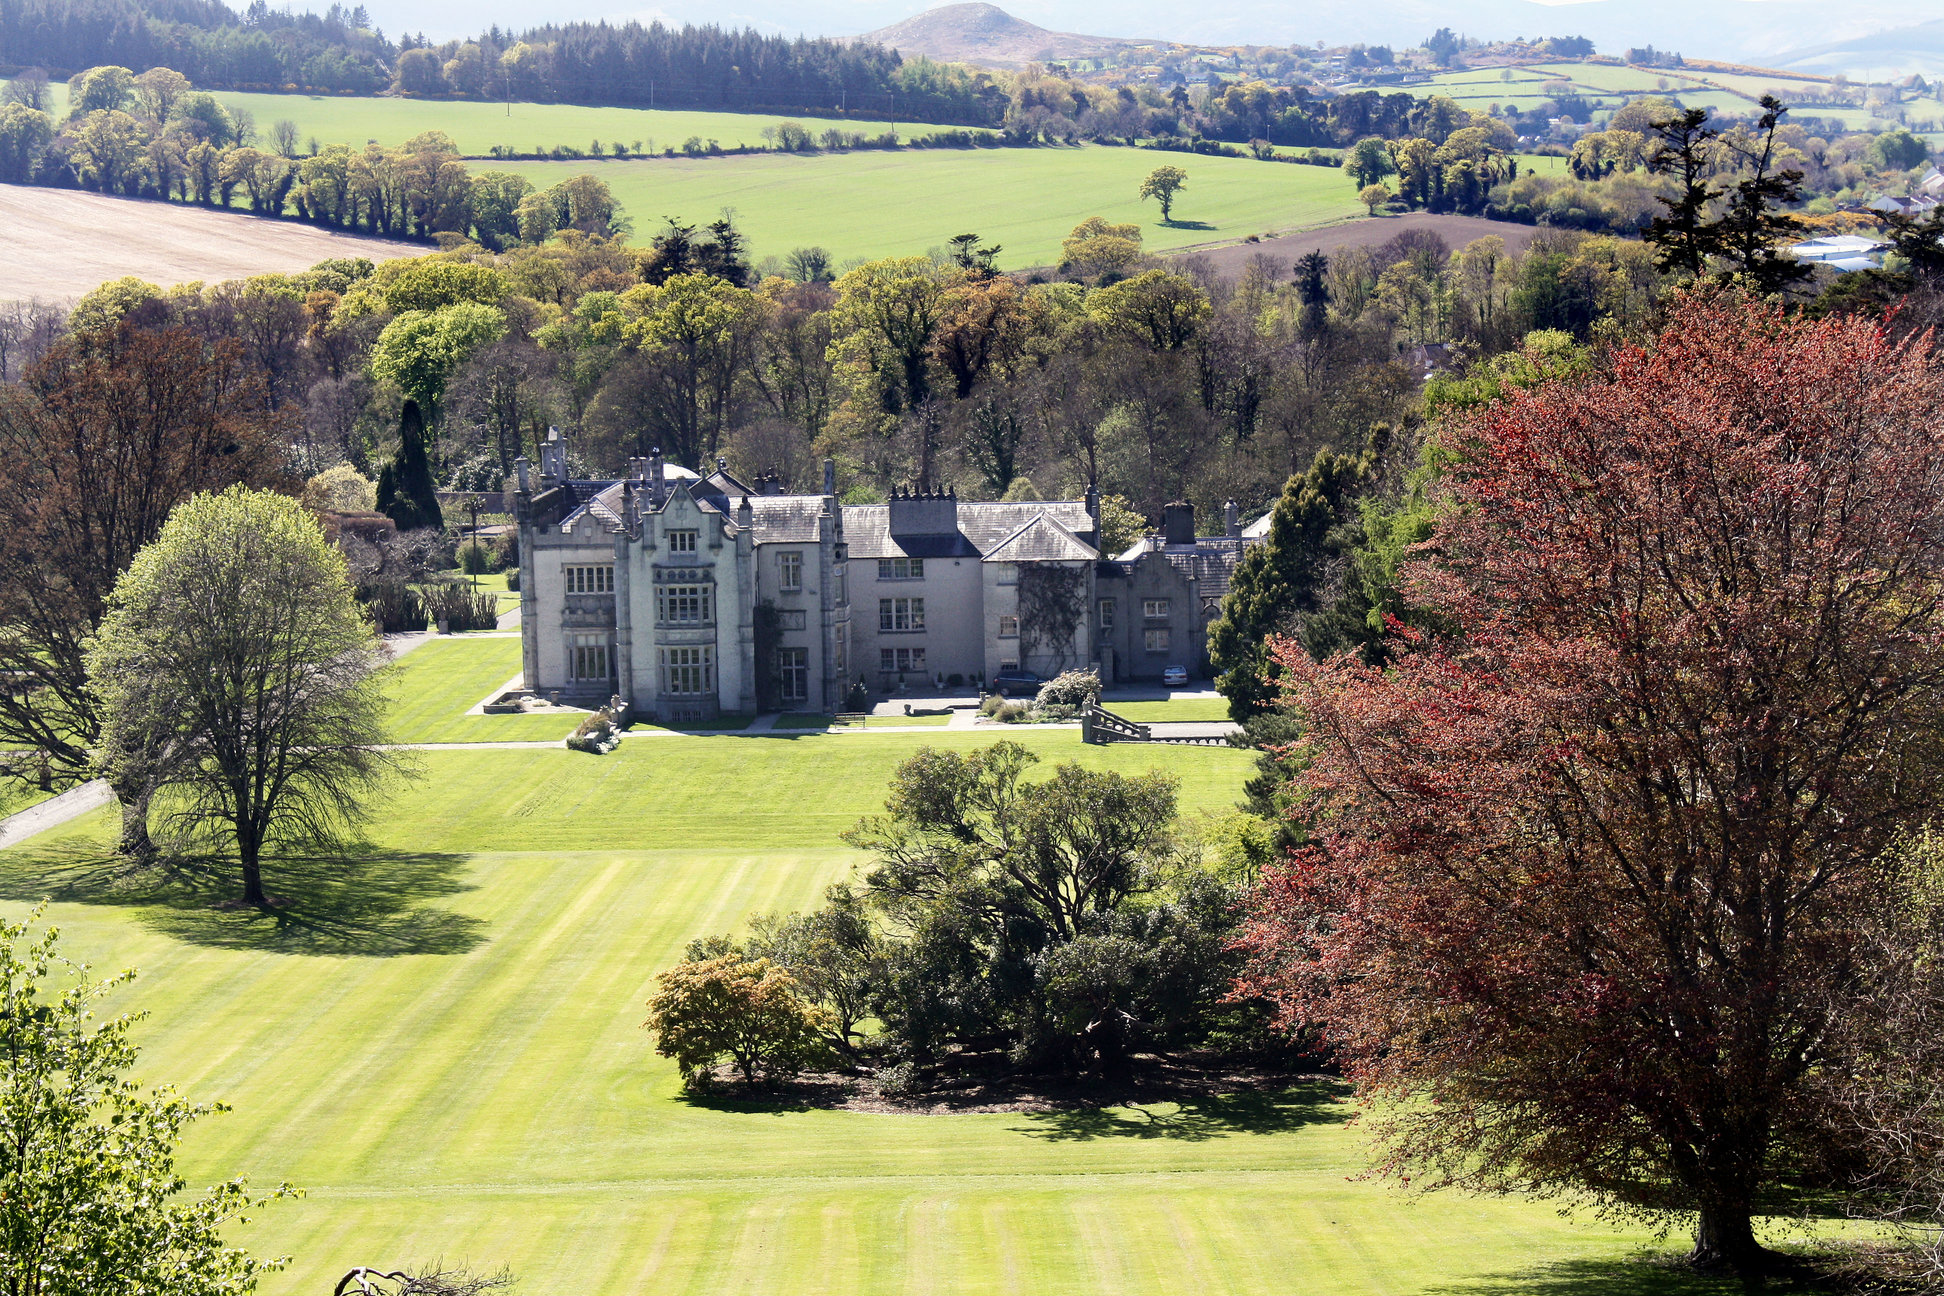 The beautiful Killruddery Estate and gardens